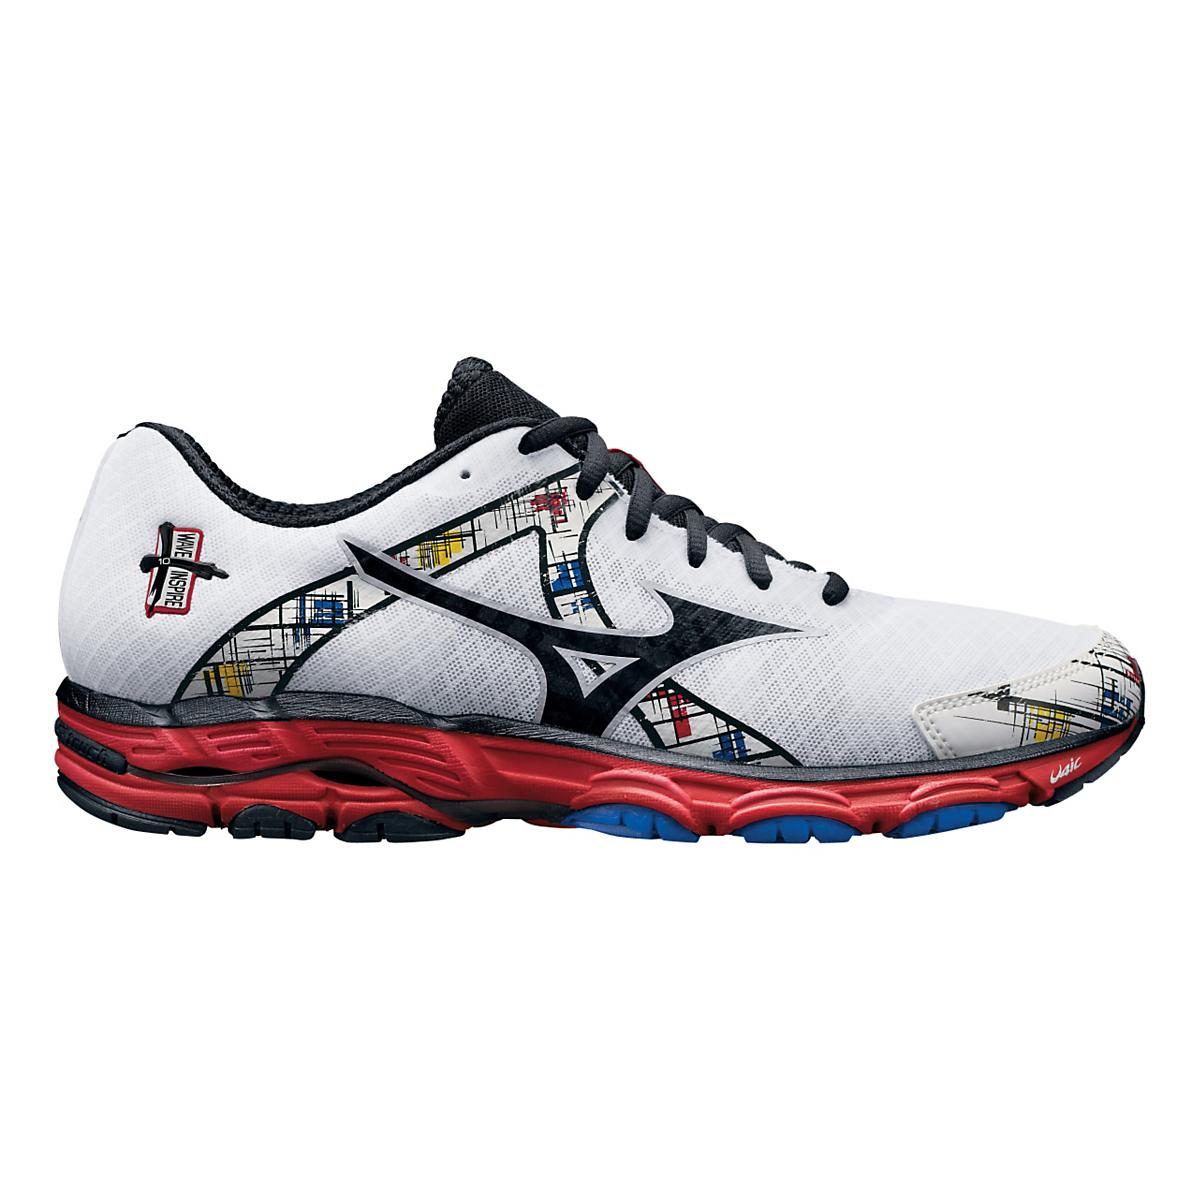 071caf34e703 Mens Mizuno Wave Inspire 10 Running Shoe at Road Runner Sports